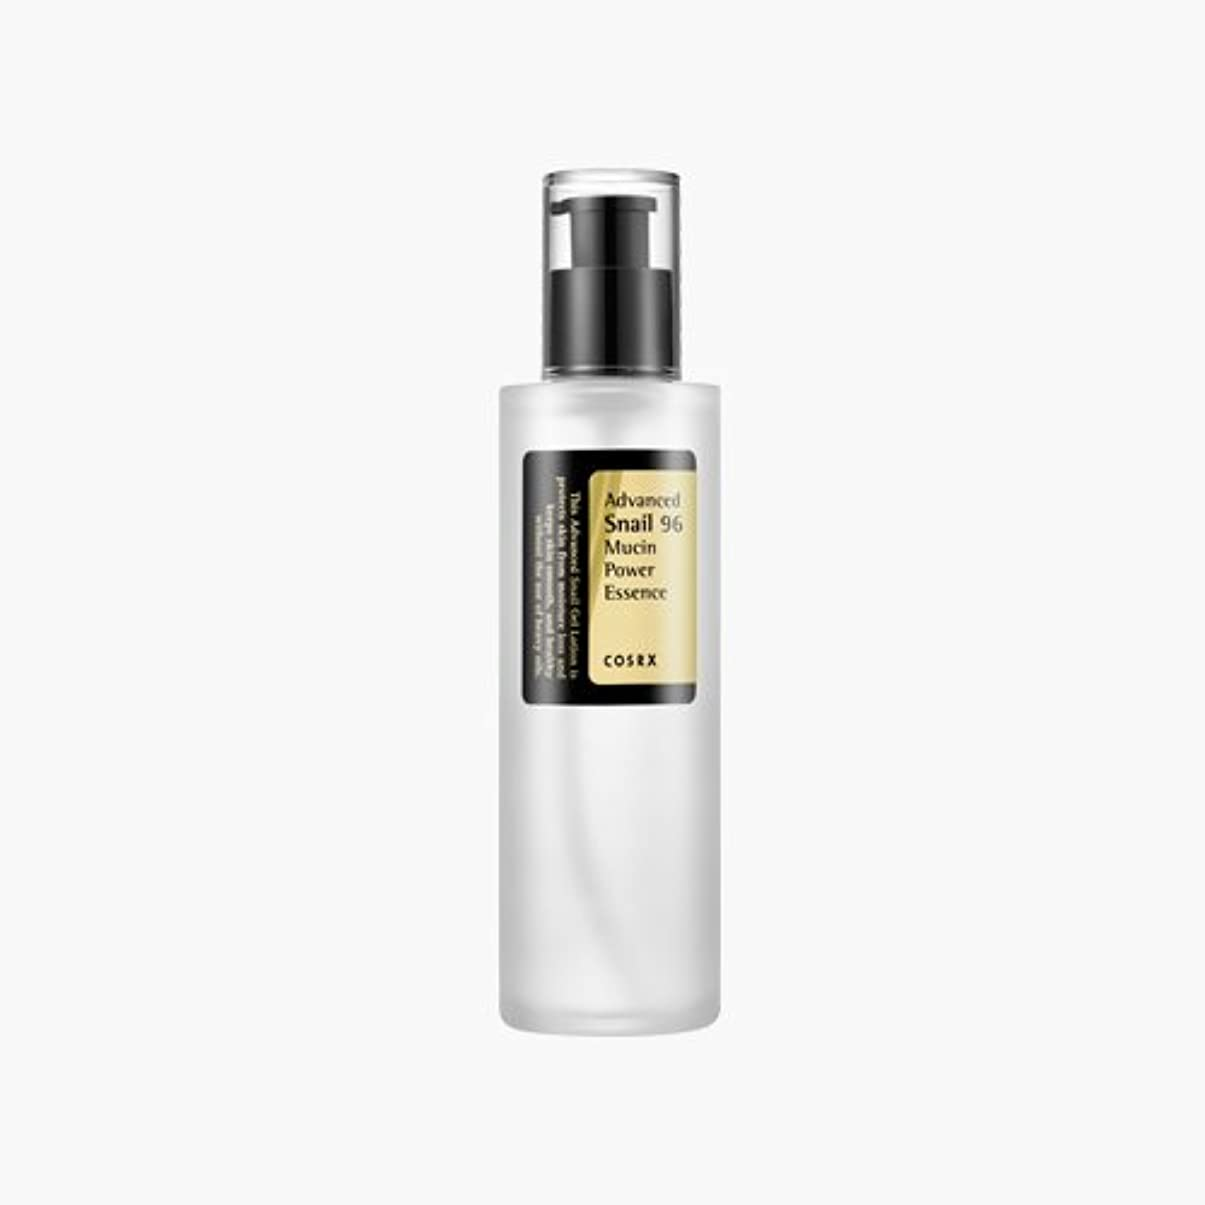 趣味中止します非常に[Cosrx] Advanced Snail 96 Mucin Power Essence 100ml/K-Beauty/Korea Cosmetics